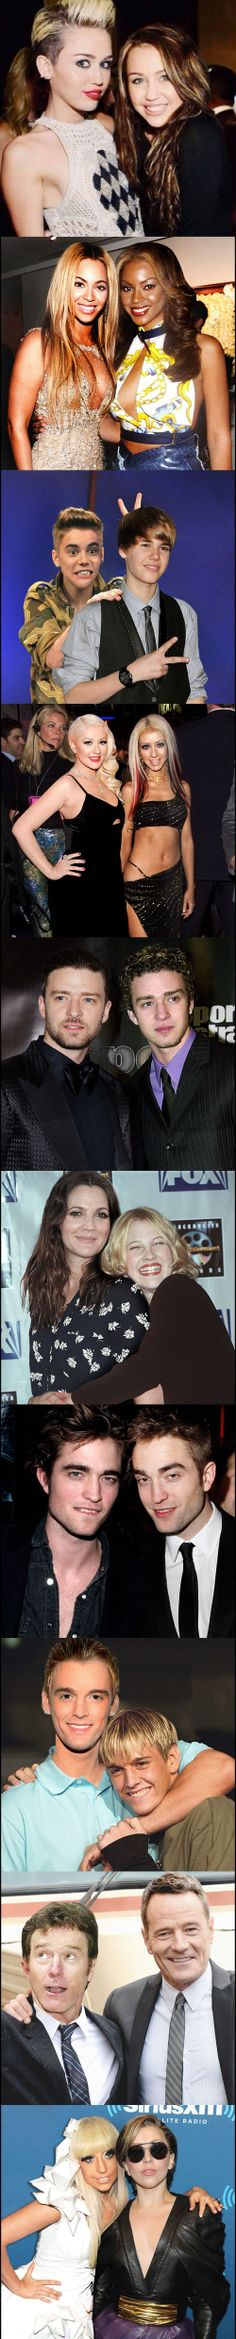 Celebrities Posing With The Old Versions Of Themselves